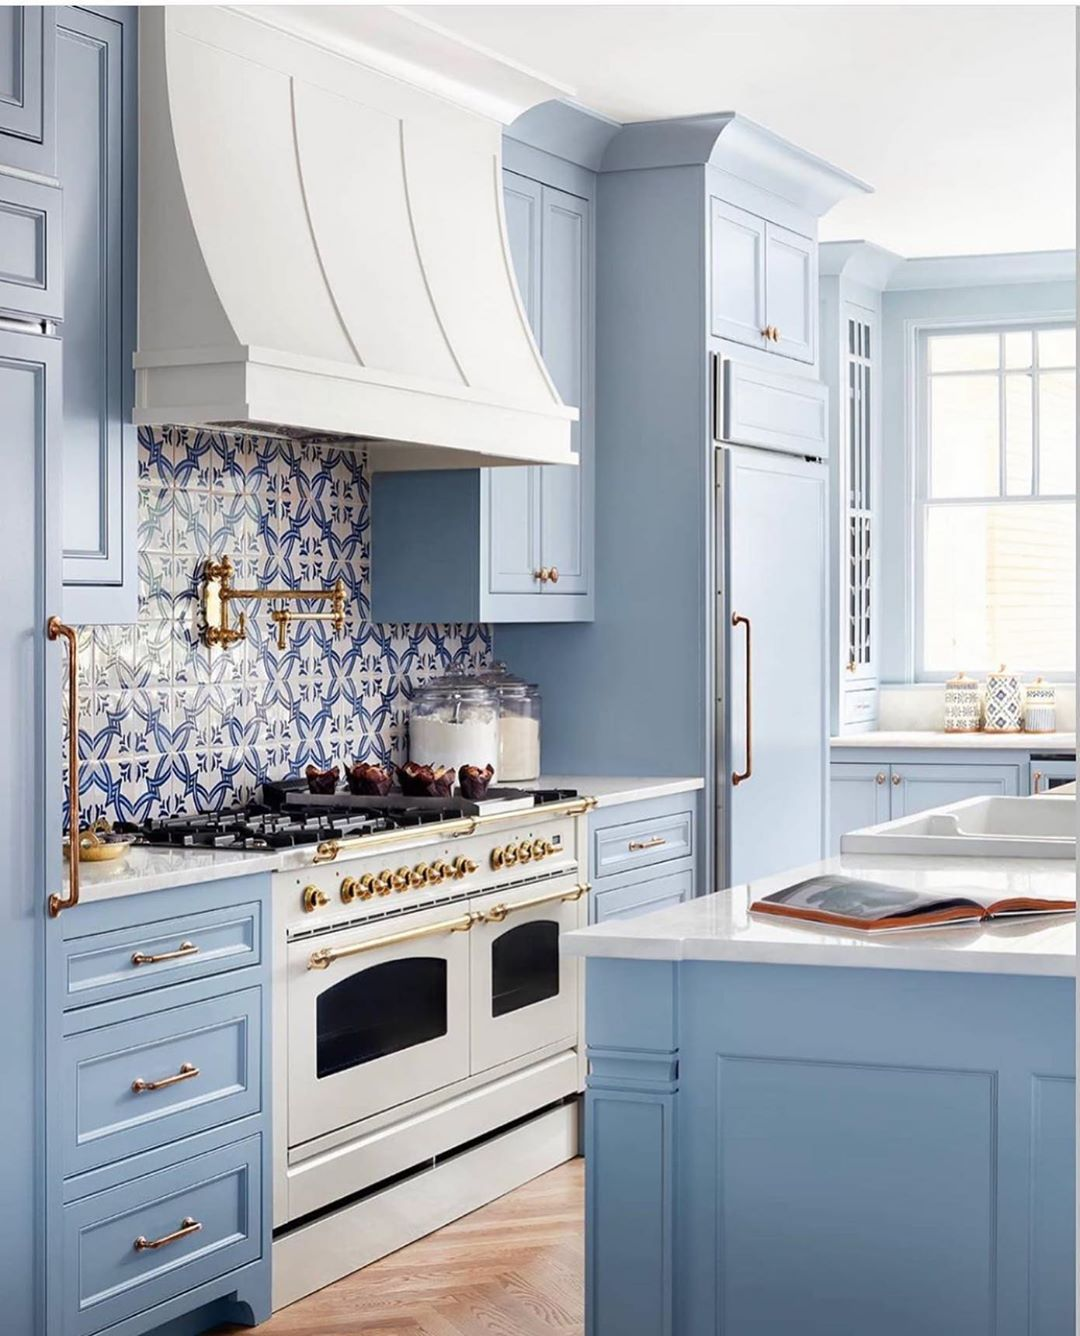 Kitchens Of Instagram On Instagram This Kitchen Is So Bright And Beautiful We Can T Help But Smile By A In 2020 Classic White Kitchen Blue Kitchens Kitchen Design